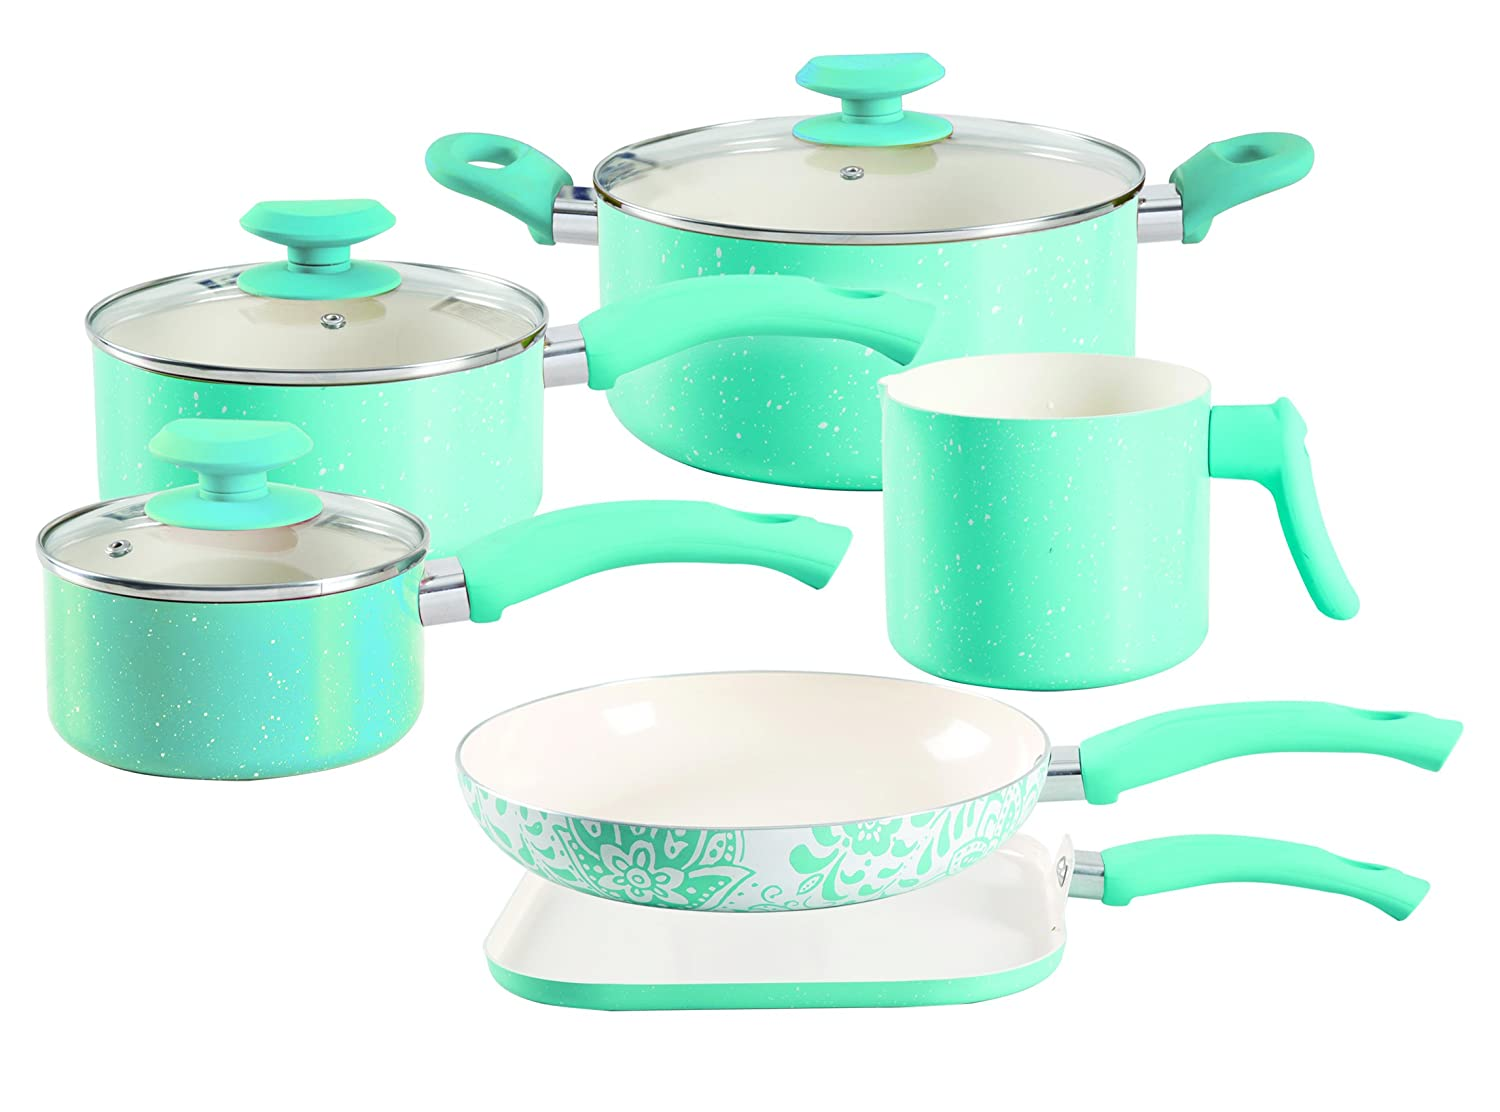 Oster Cocina 112069.09 San Jacinto 9 Piece Non-Stick Cookware Set, Turquoise Speckle